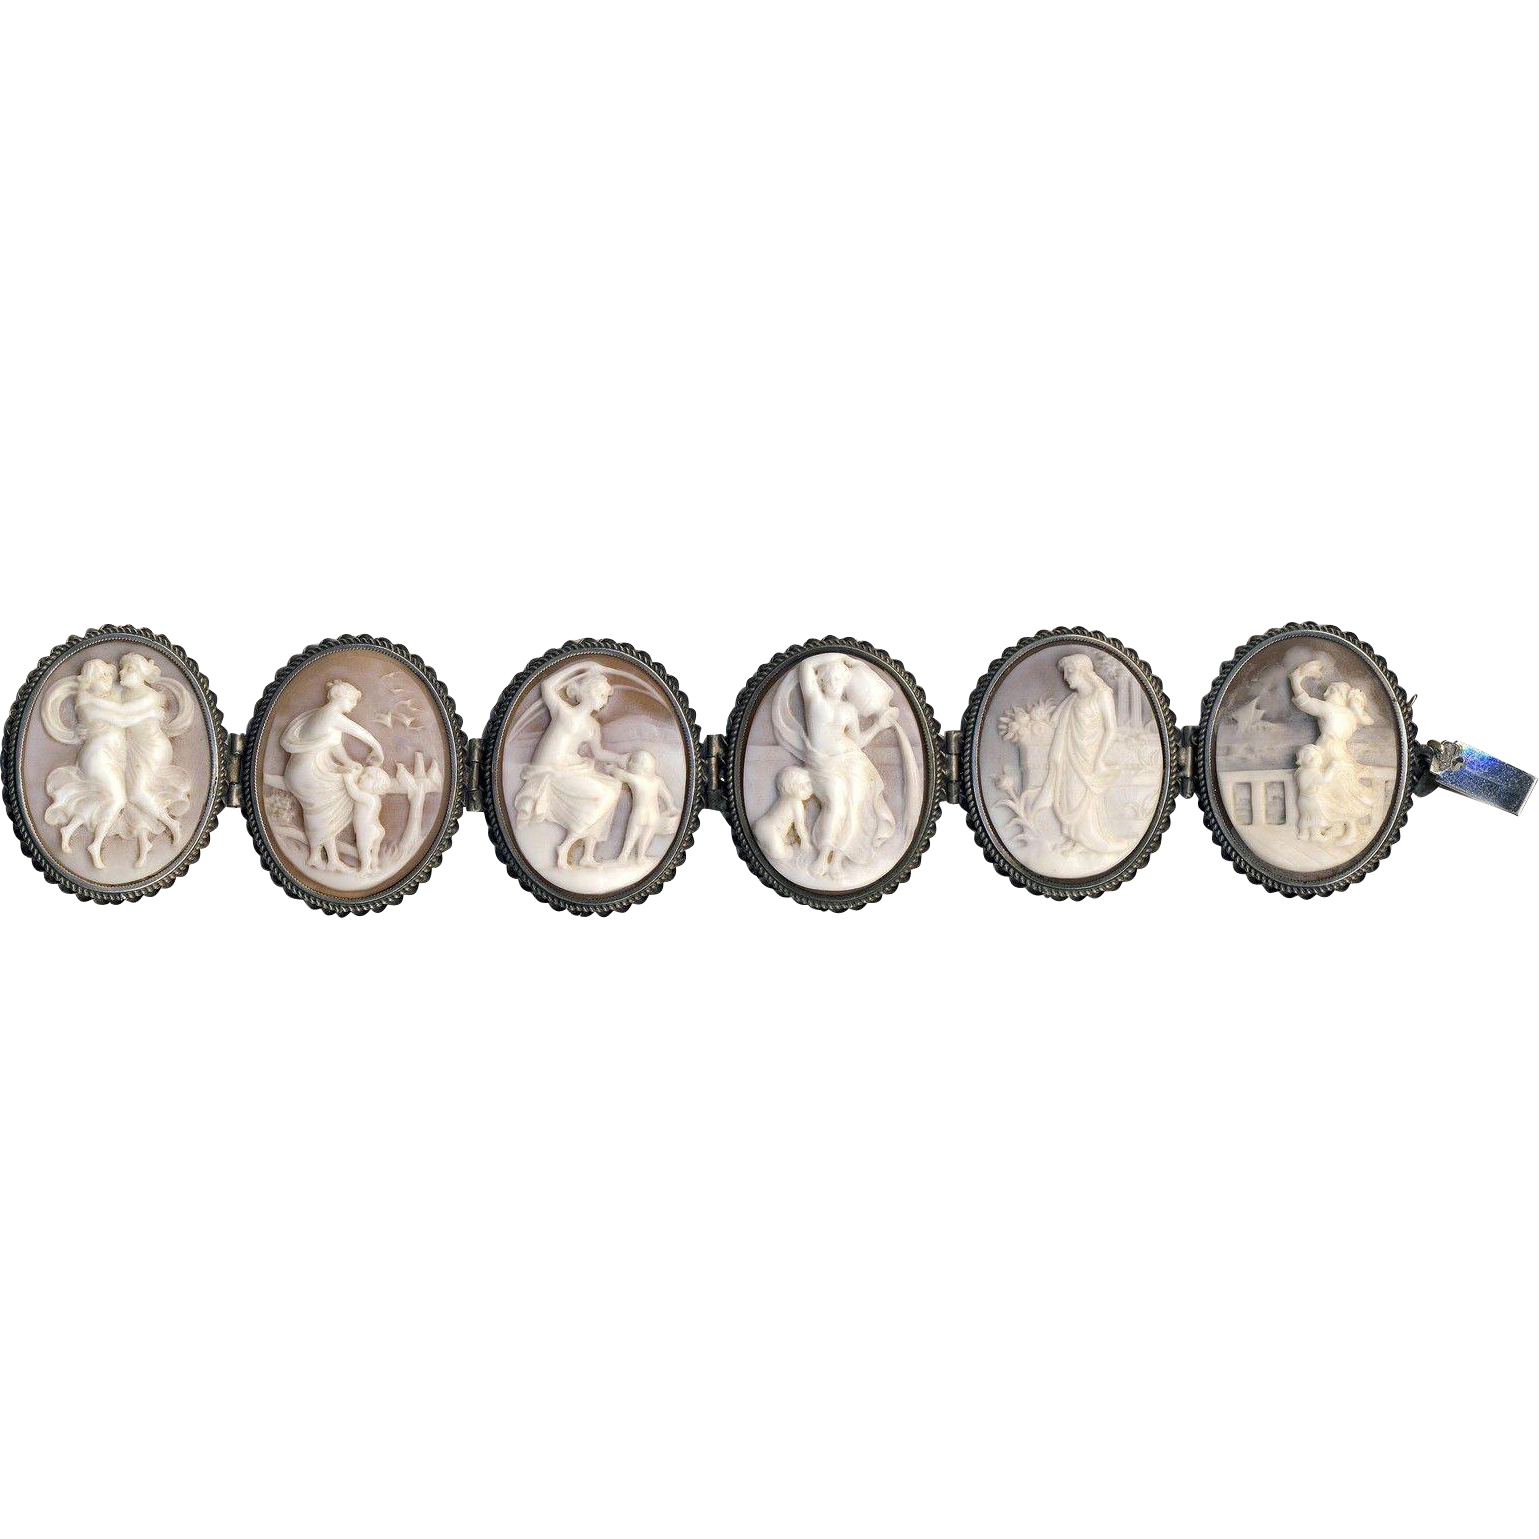 Bracelet--Very Fine Quality 19th C. Large Shell Cameos of Women Waiting in Silver--Some Single Moms Too